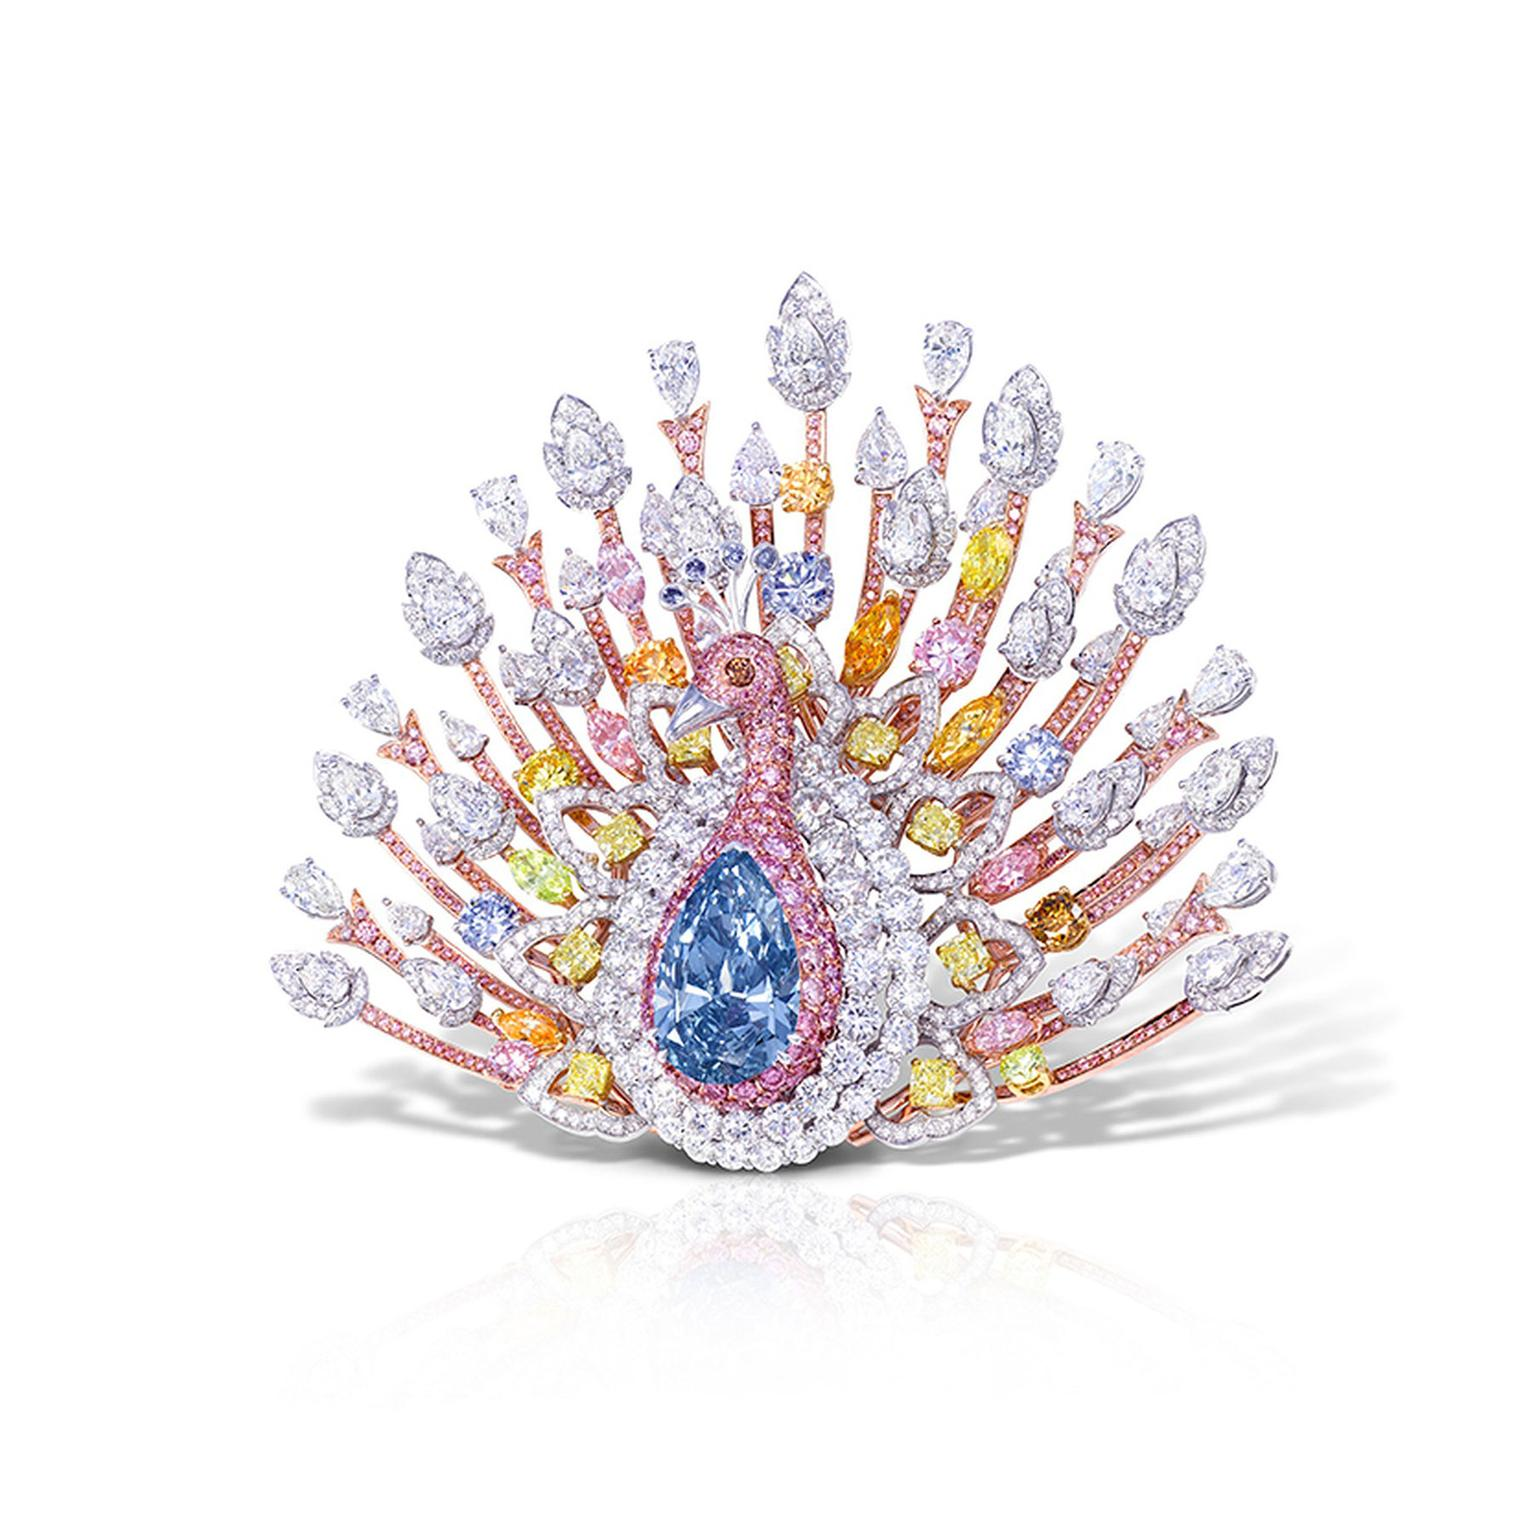 Graff diamond peacock brooch